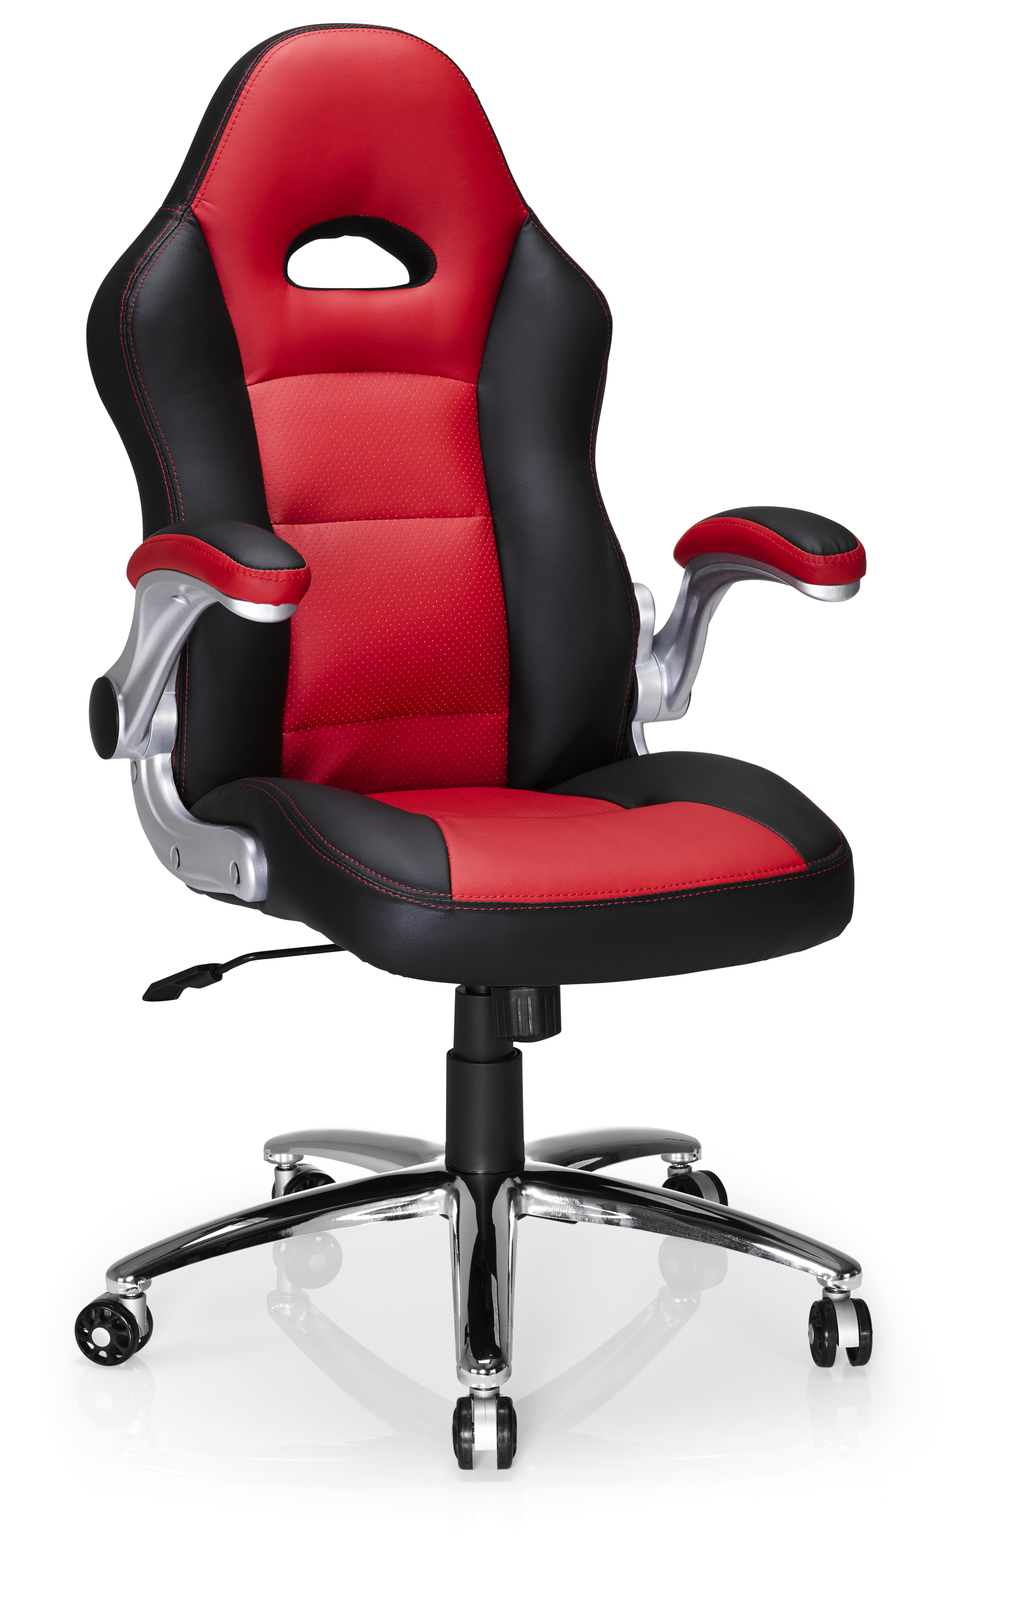 Hummingbird Le Mans Racer Chair black and red Black and